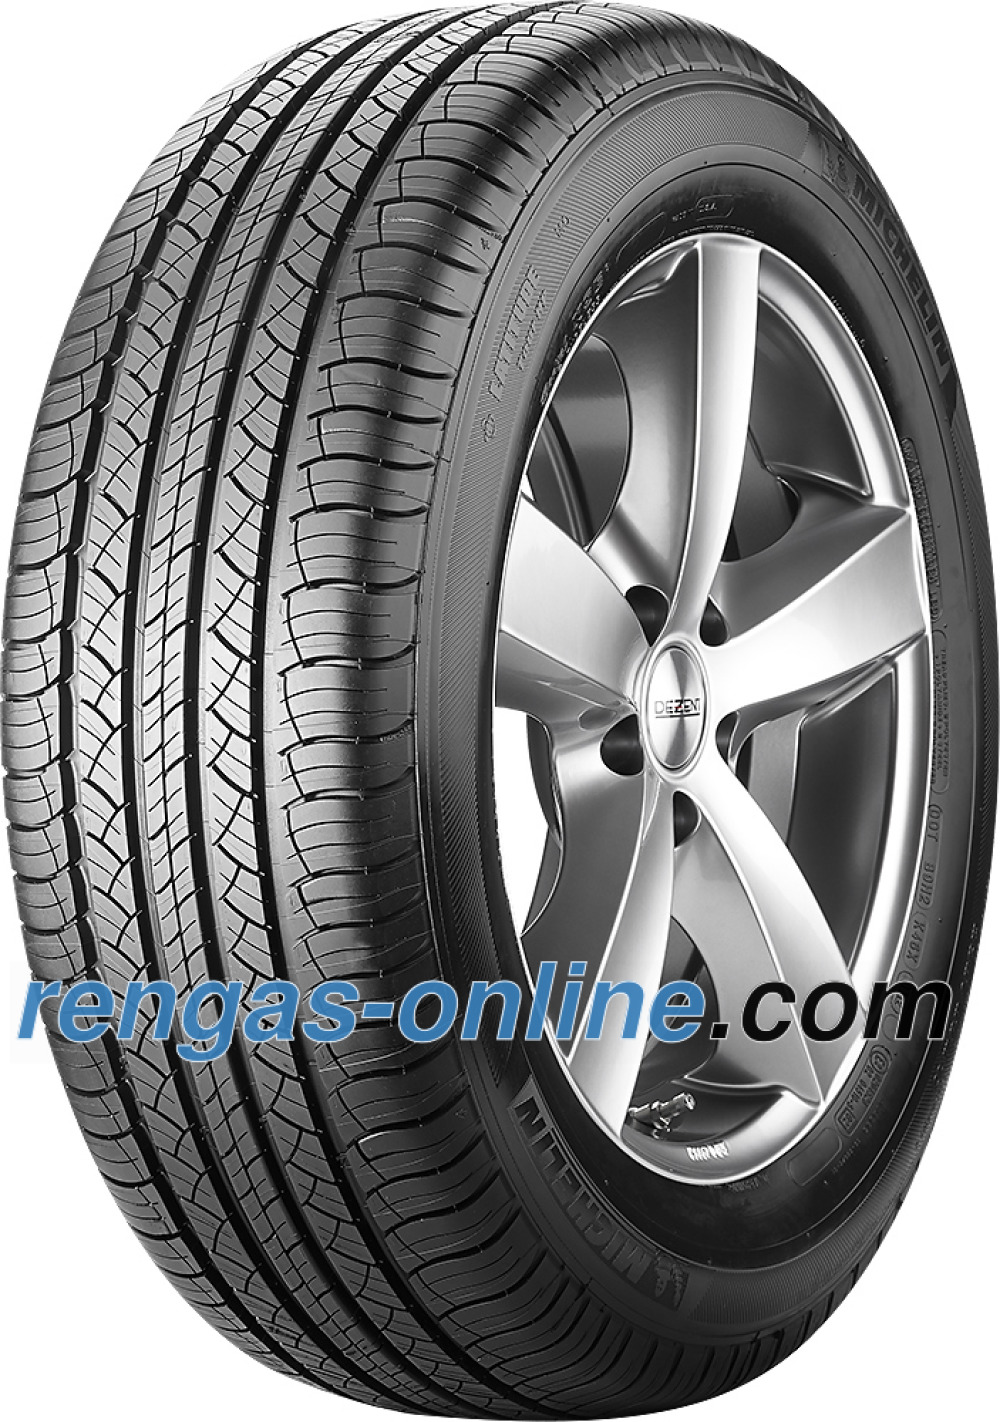 michelin-latitude-tour-hp-25555-r18-105v-n0